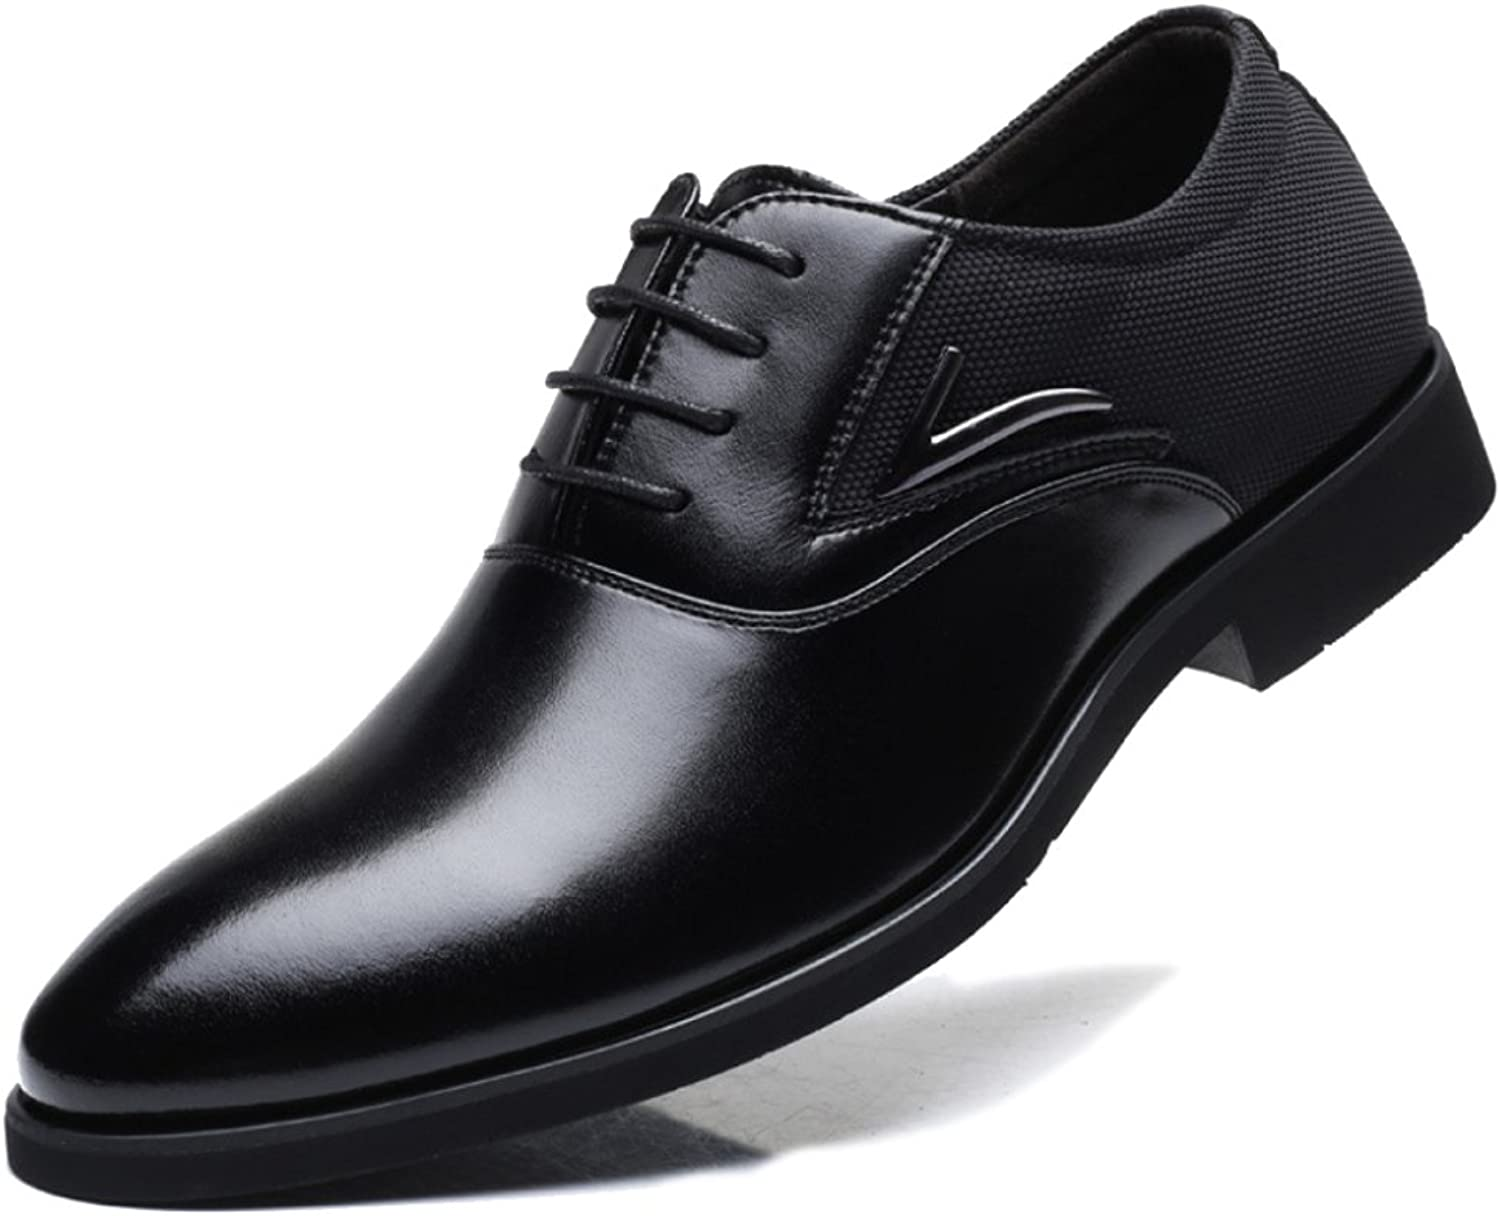 MERRYHE Mens Large Size Pointed Toe Oxford Microfiber Leather Lace Ups Formal Dress shoes Business Party Work Wedding